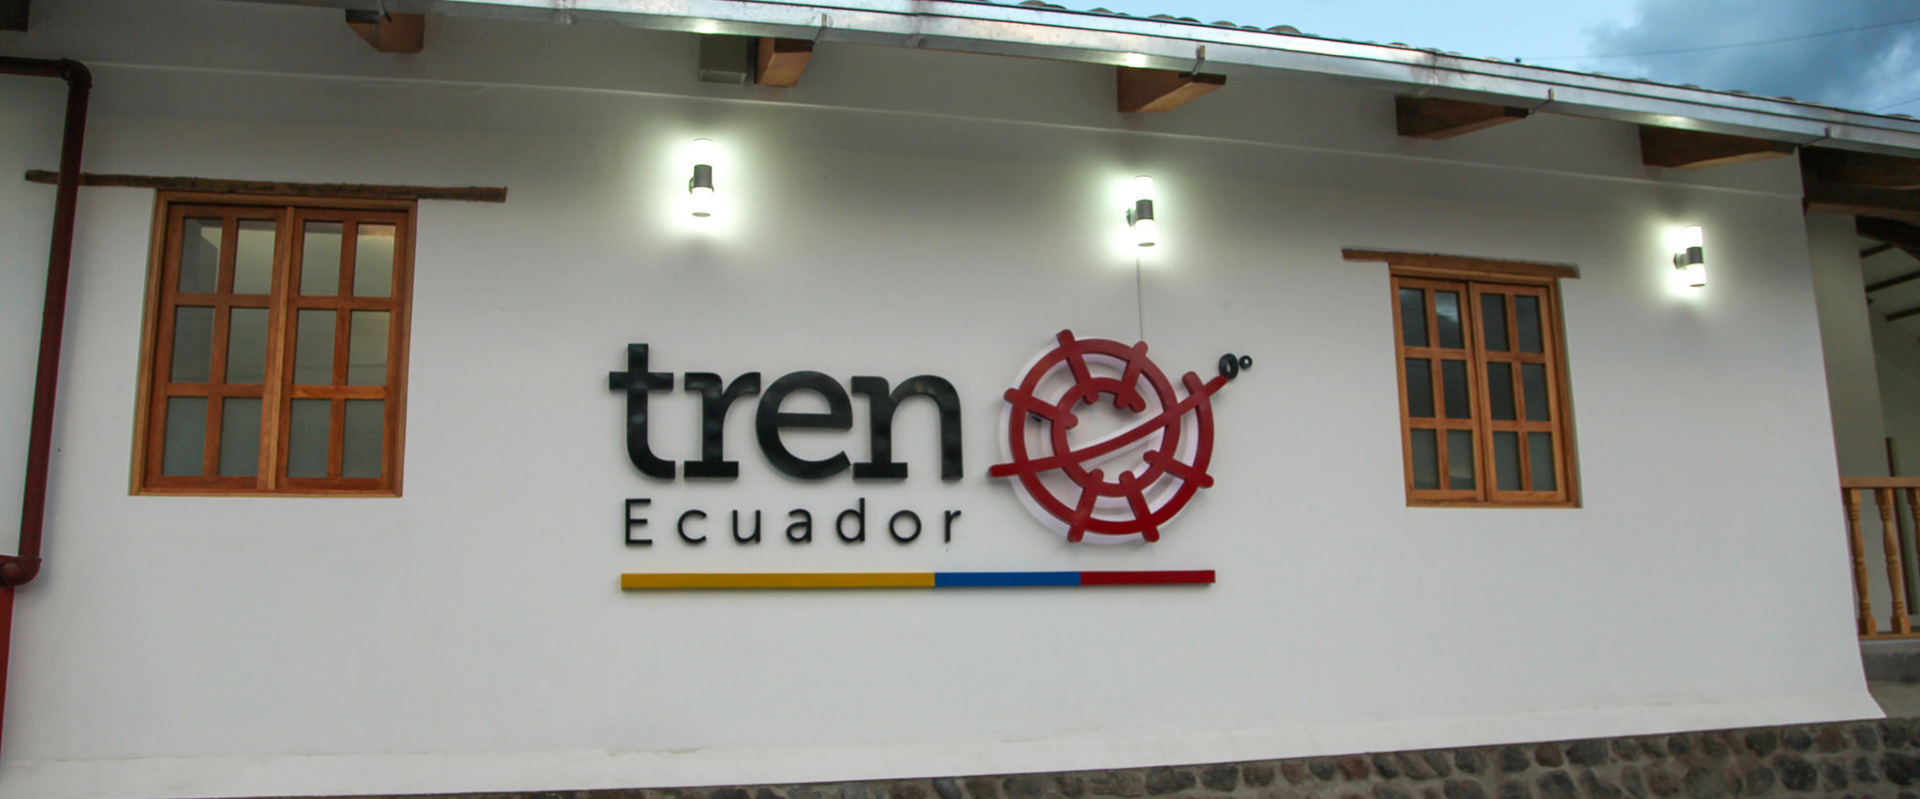 Ecuador Train Station